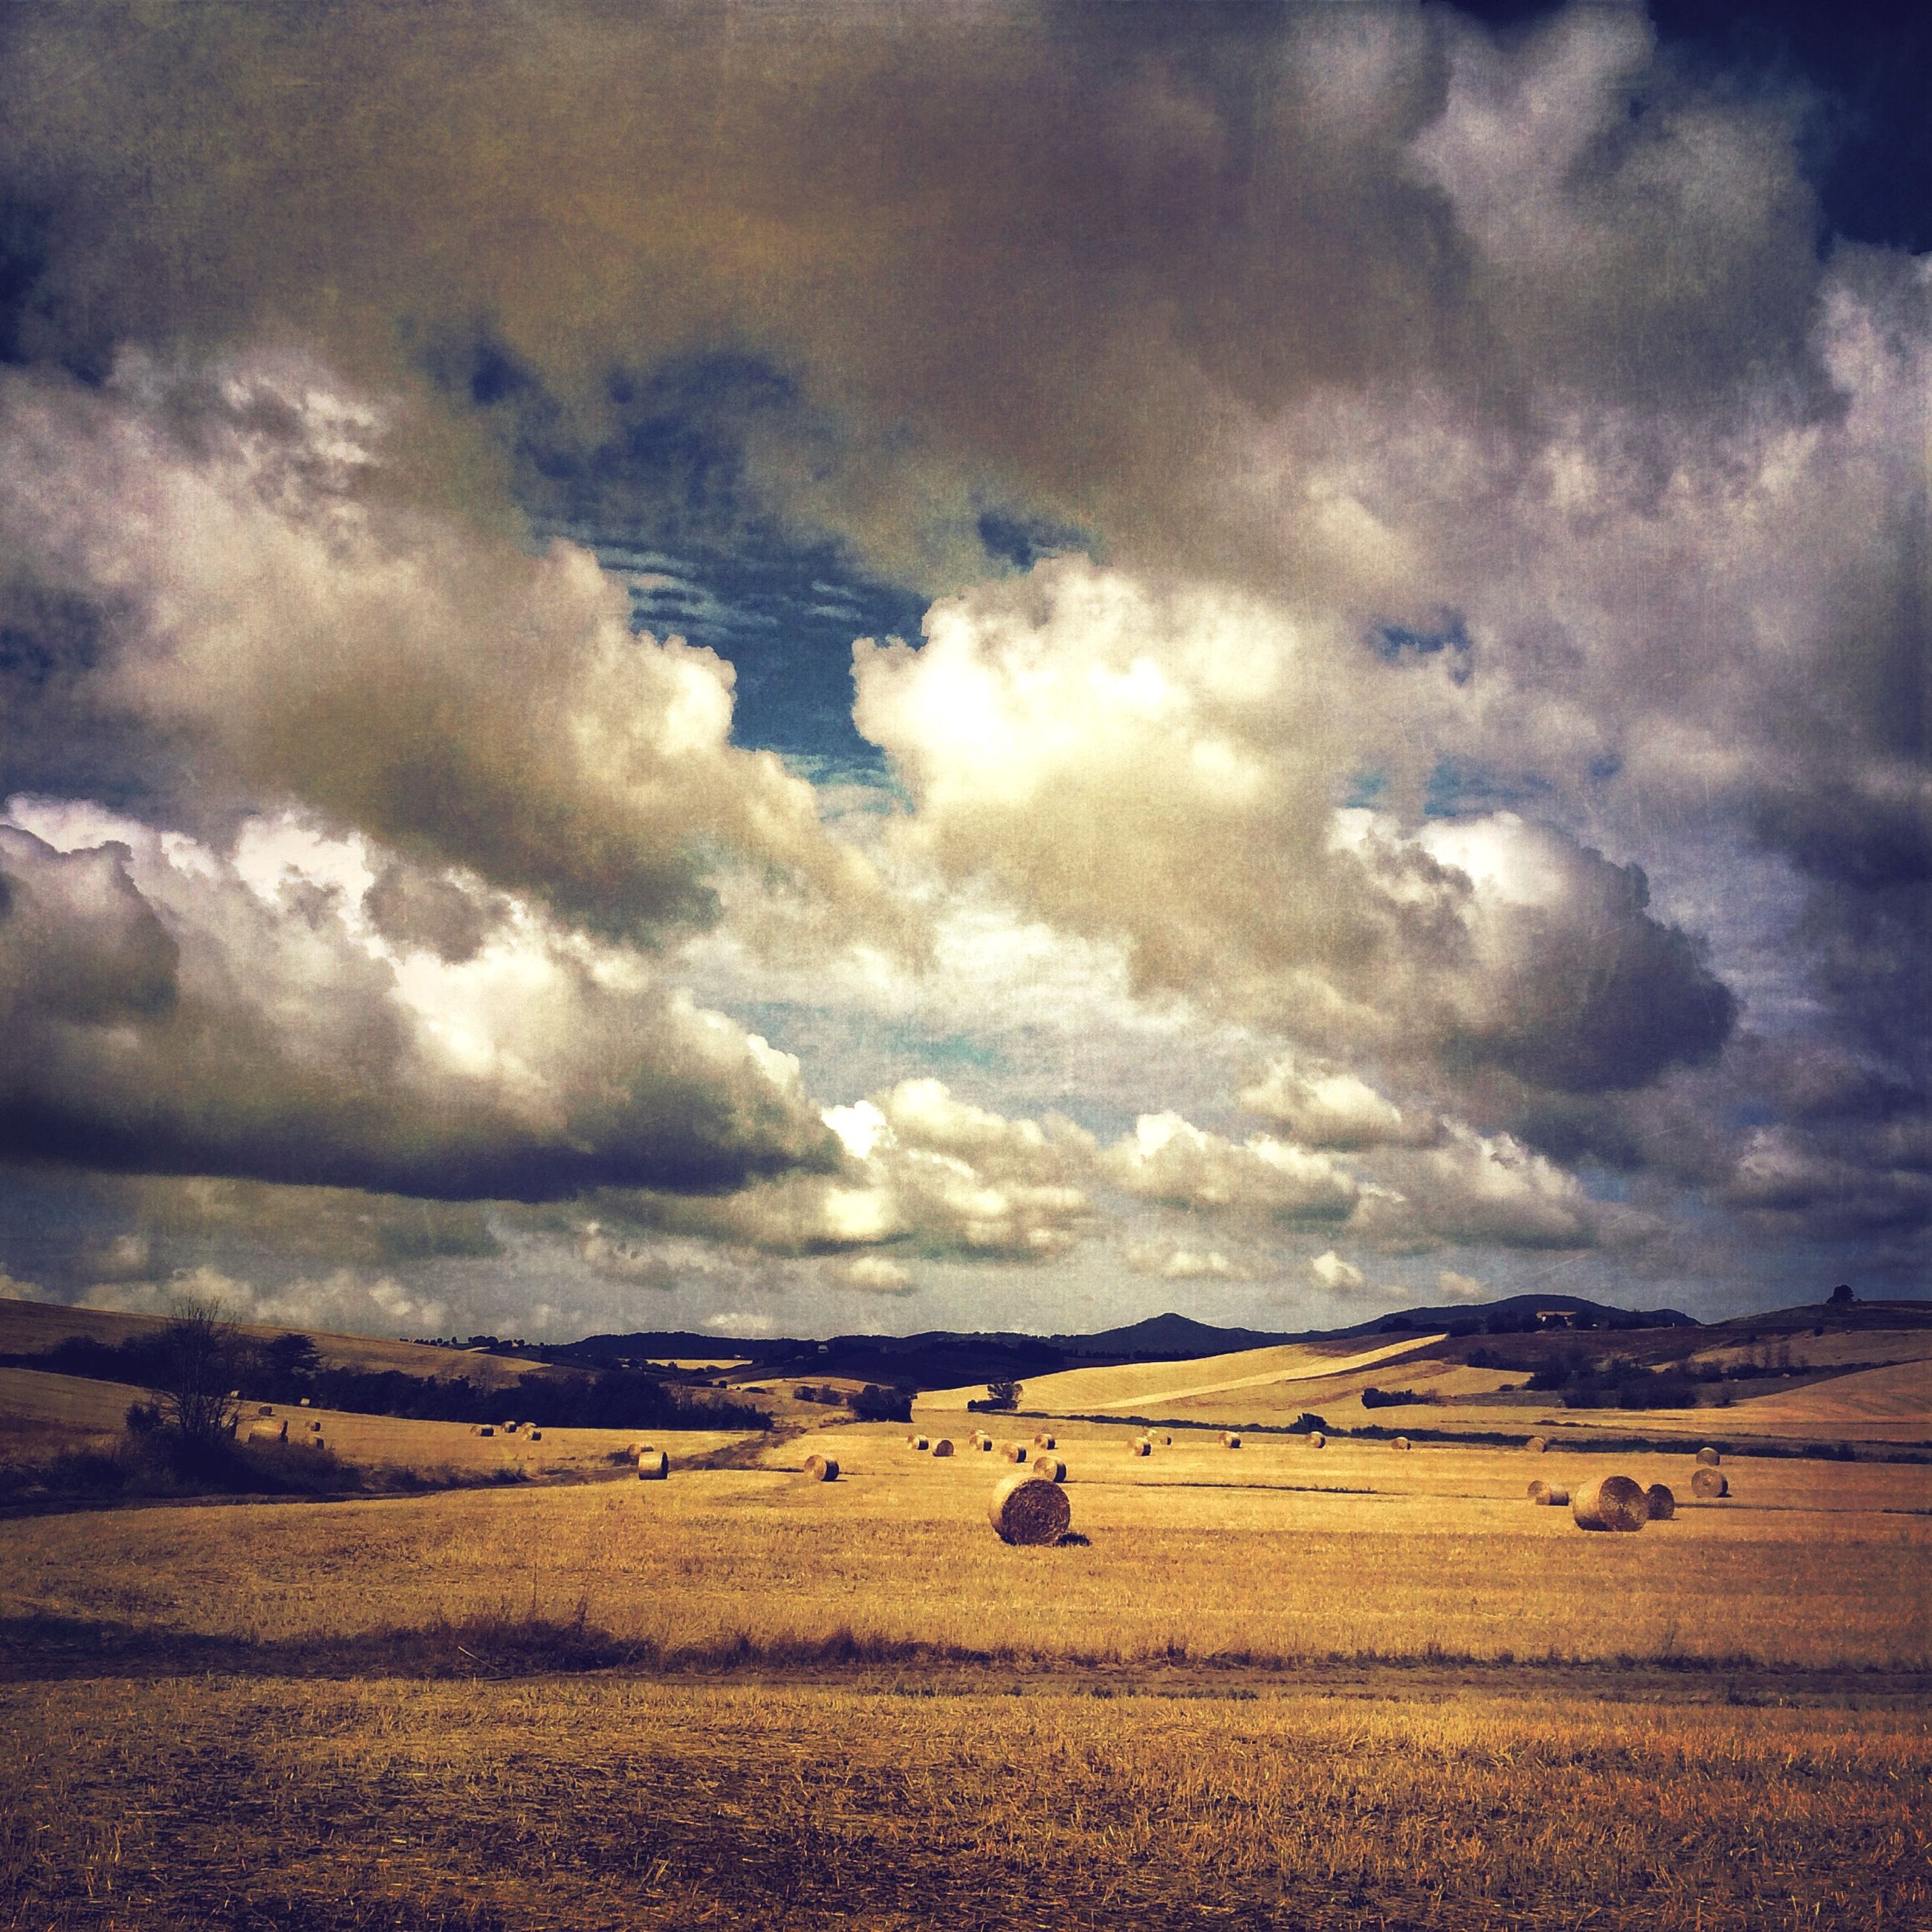 sky, cloud - sky, cloudy, tranquil scene, landscape, tranquility, scenics, beauty in nature, field, nature, cloud, overcast, weather, horizon over land, rural scene, agriculture, idyllic, storm cloud, remote, outdoors